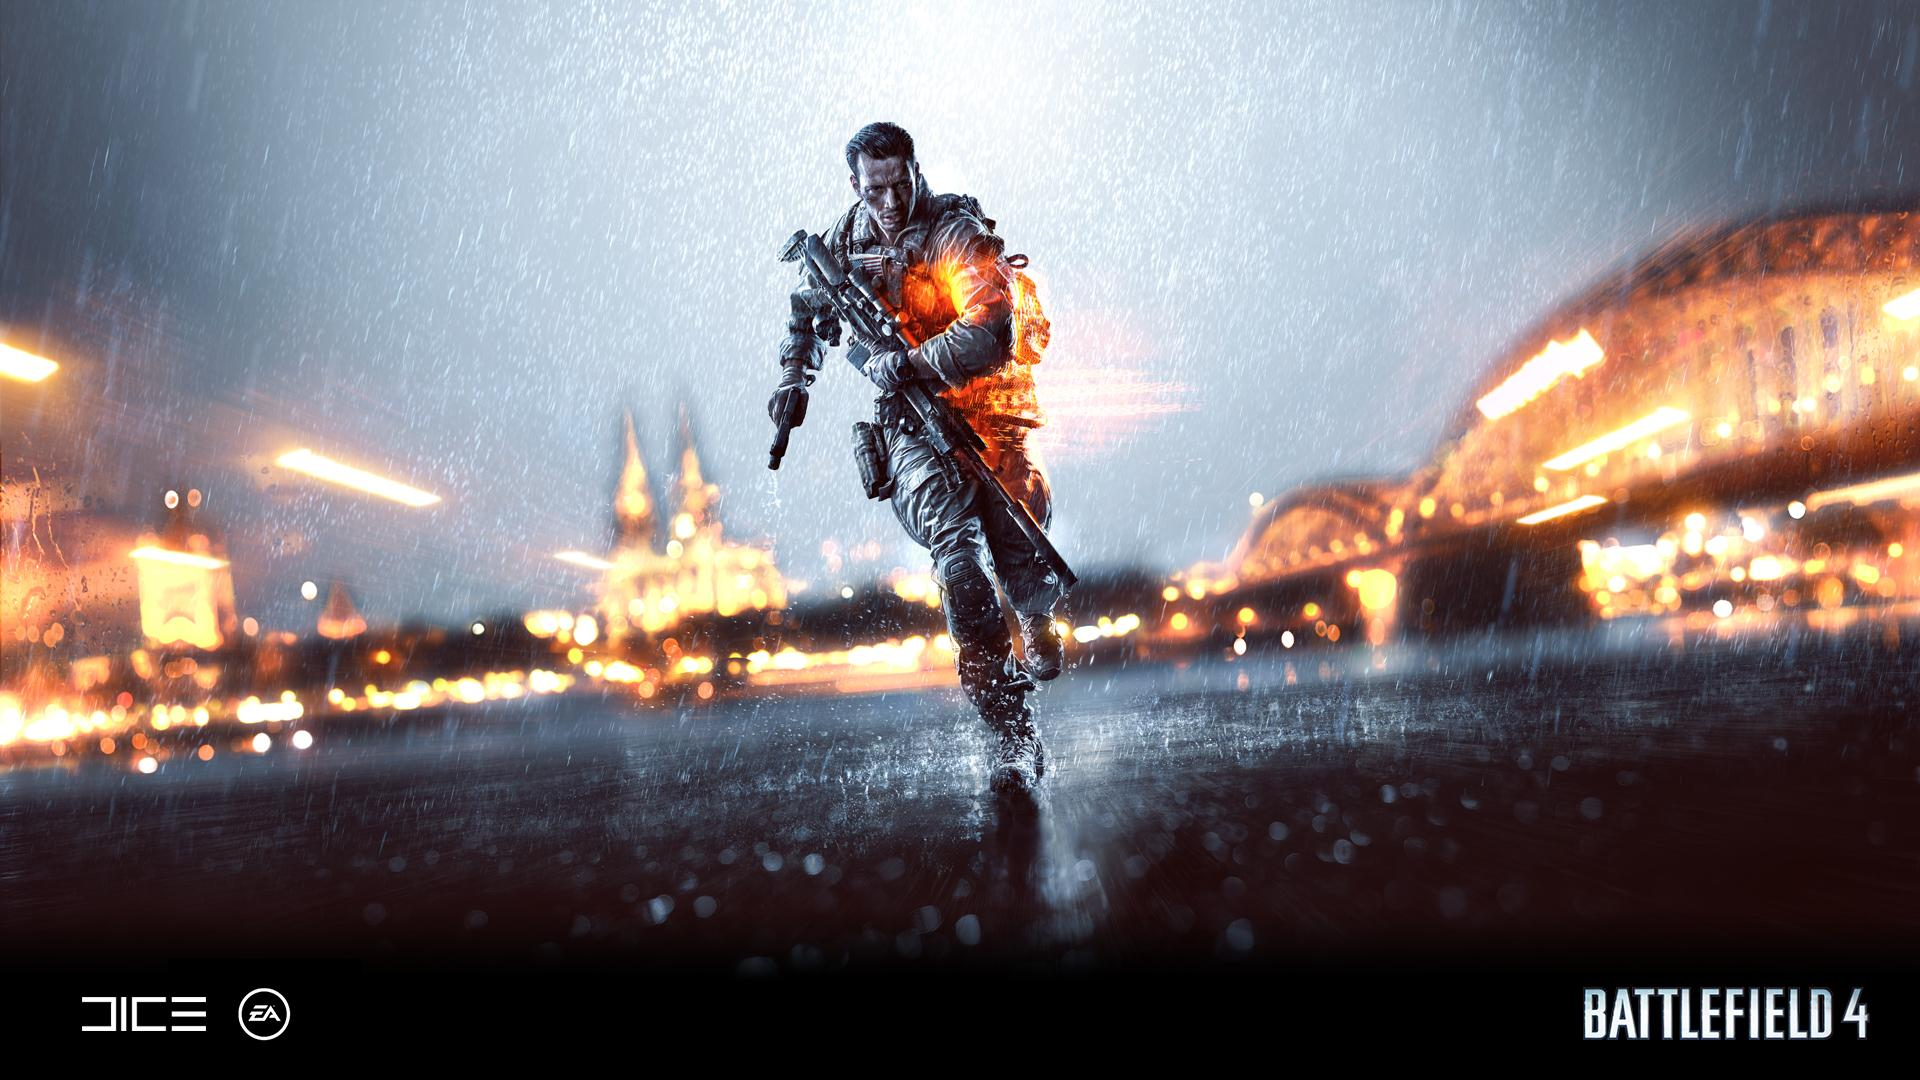 Battlefield 4 Gamescom Wallpaper [1920x1080] ...